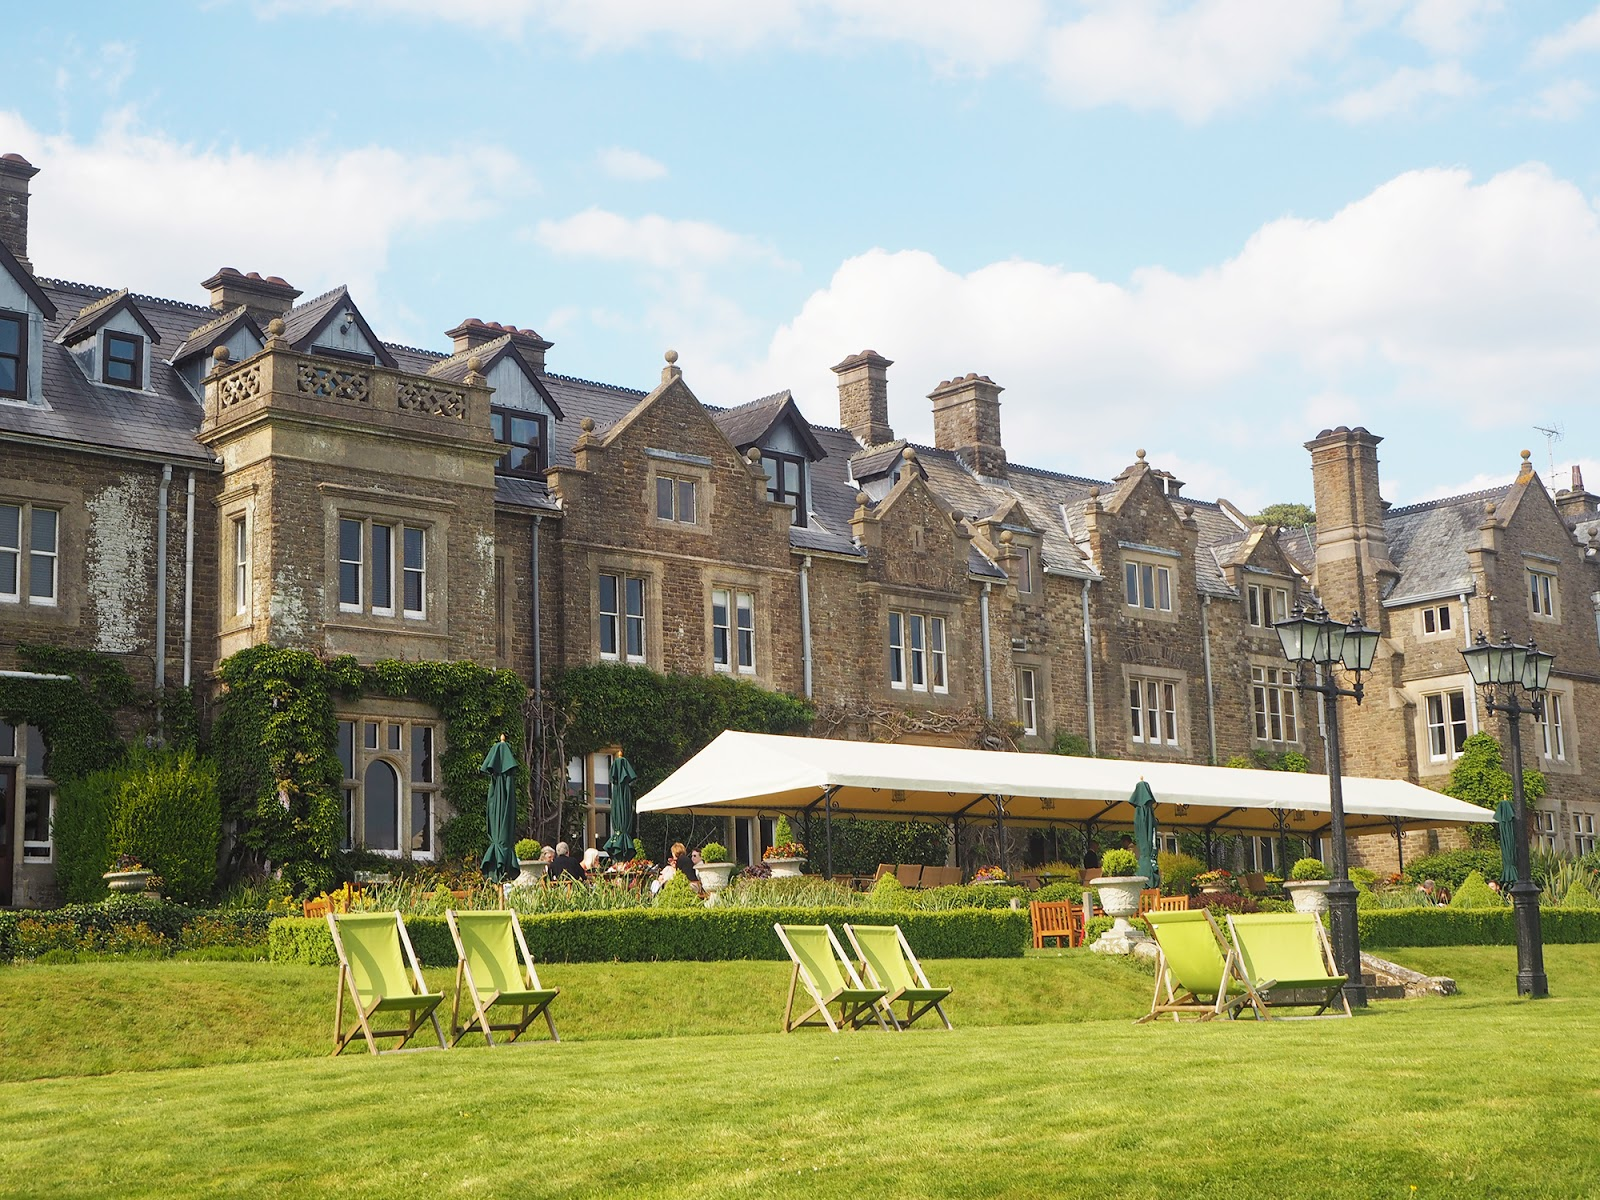 Afternoon tea review at South Lodge in Horsham - gardens